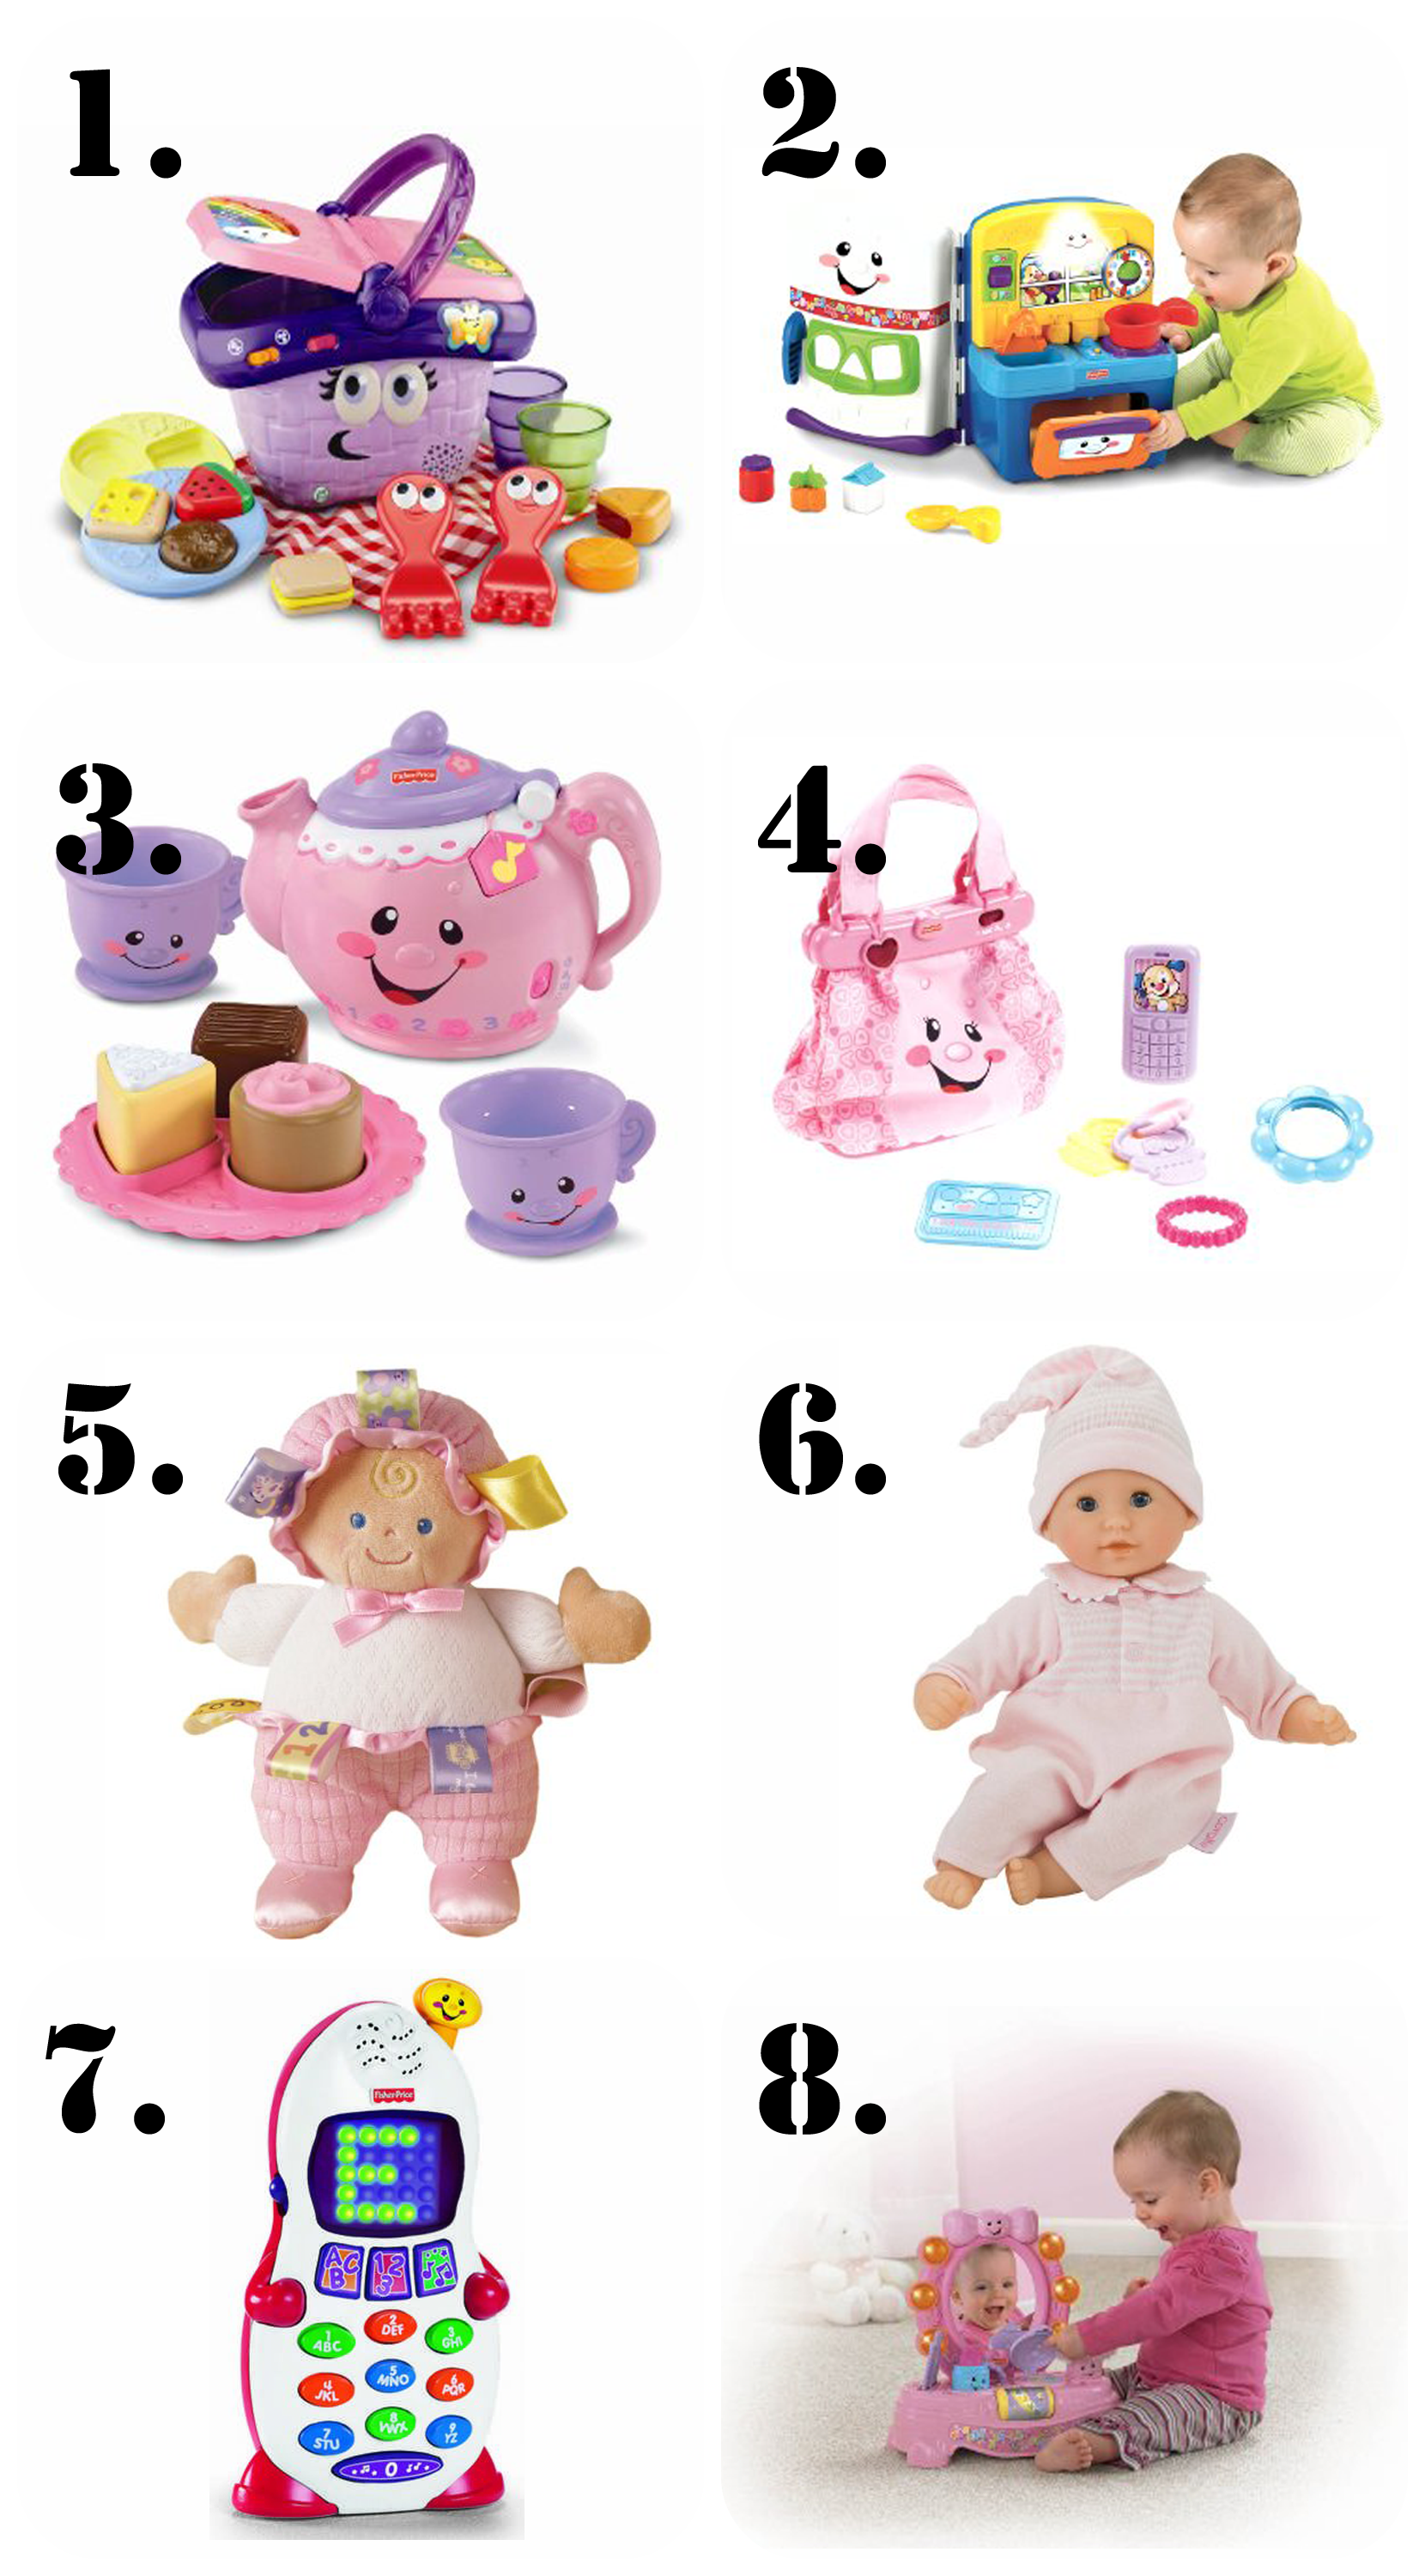 The Ultimate Gift List for a 1 Year Old Girl! | Birthdays, Gift ...